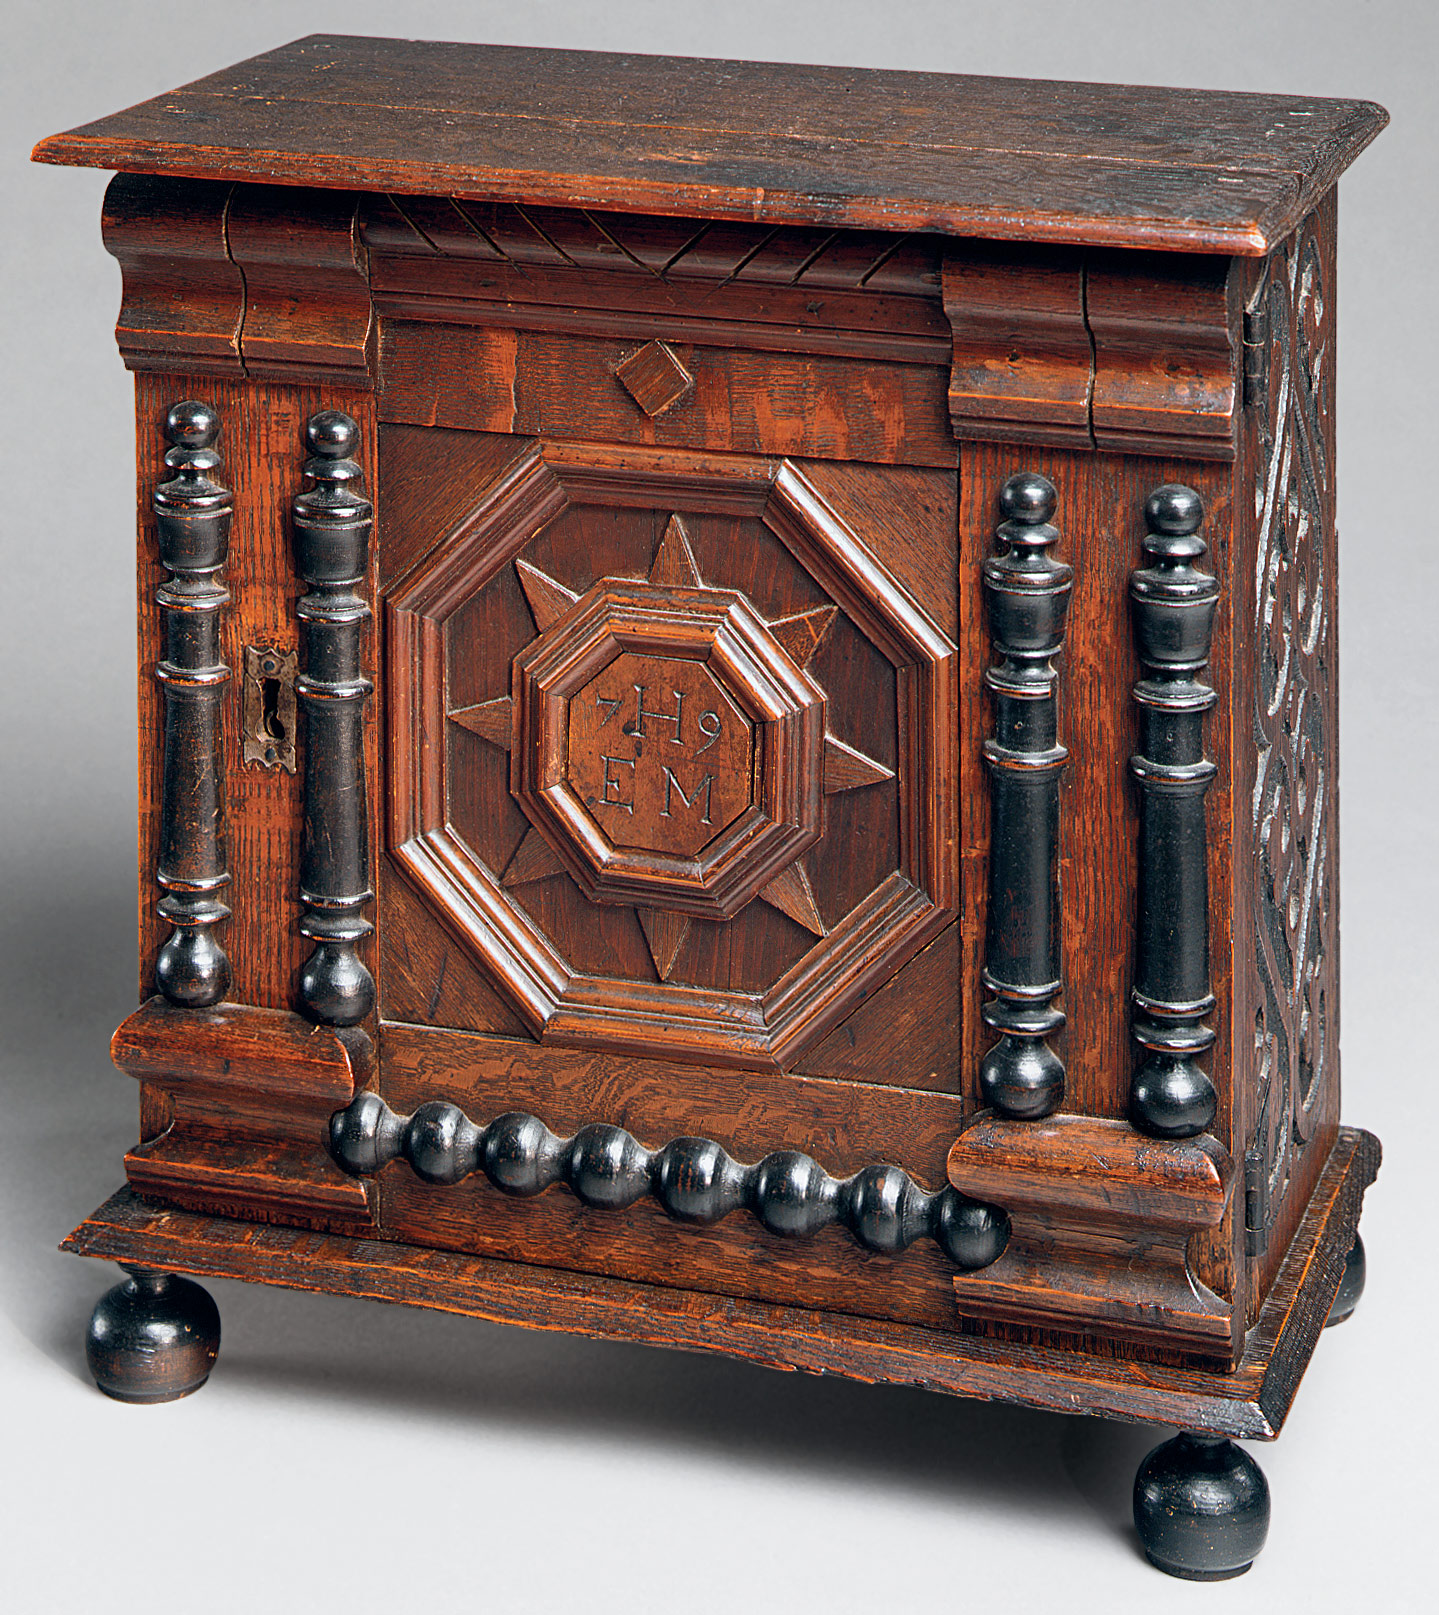 Attributed To The Symonds Shop Tradition Small Cabinet